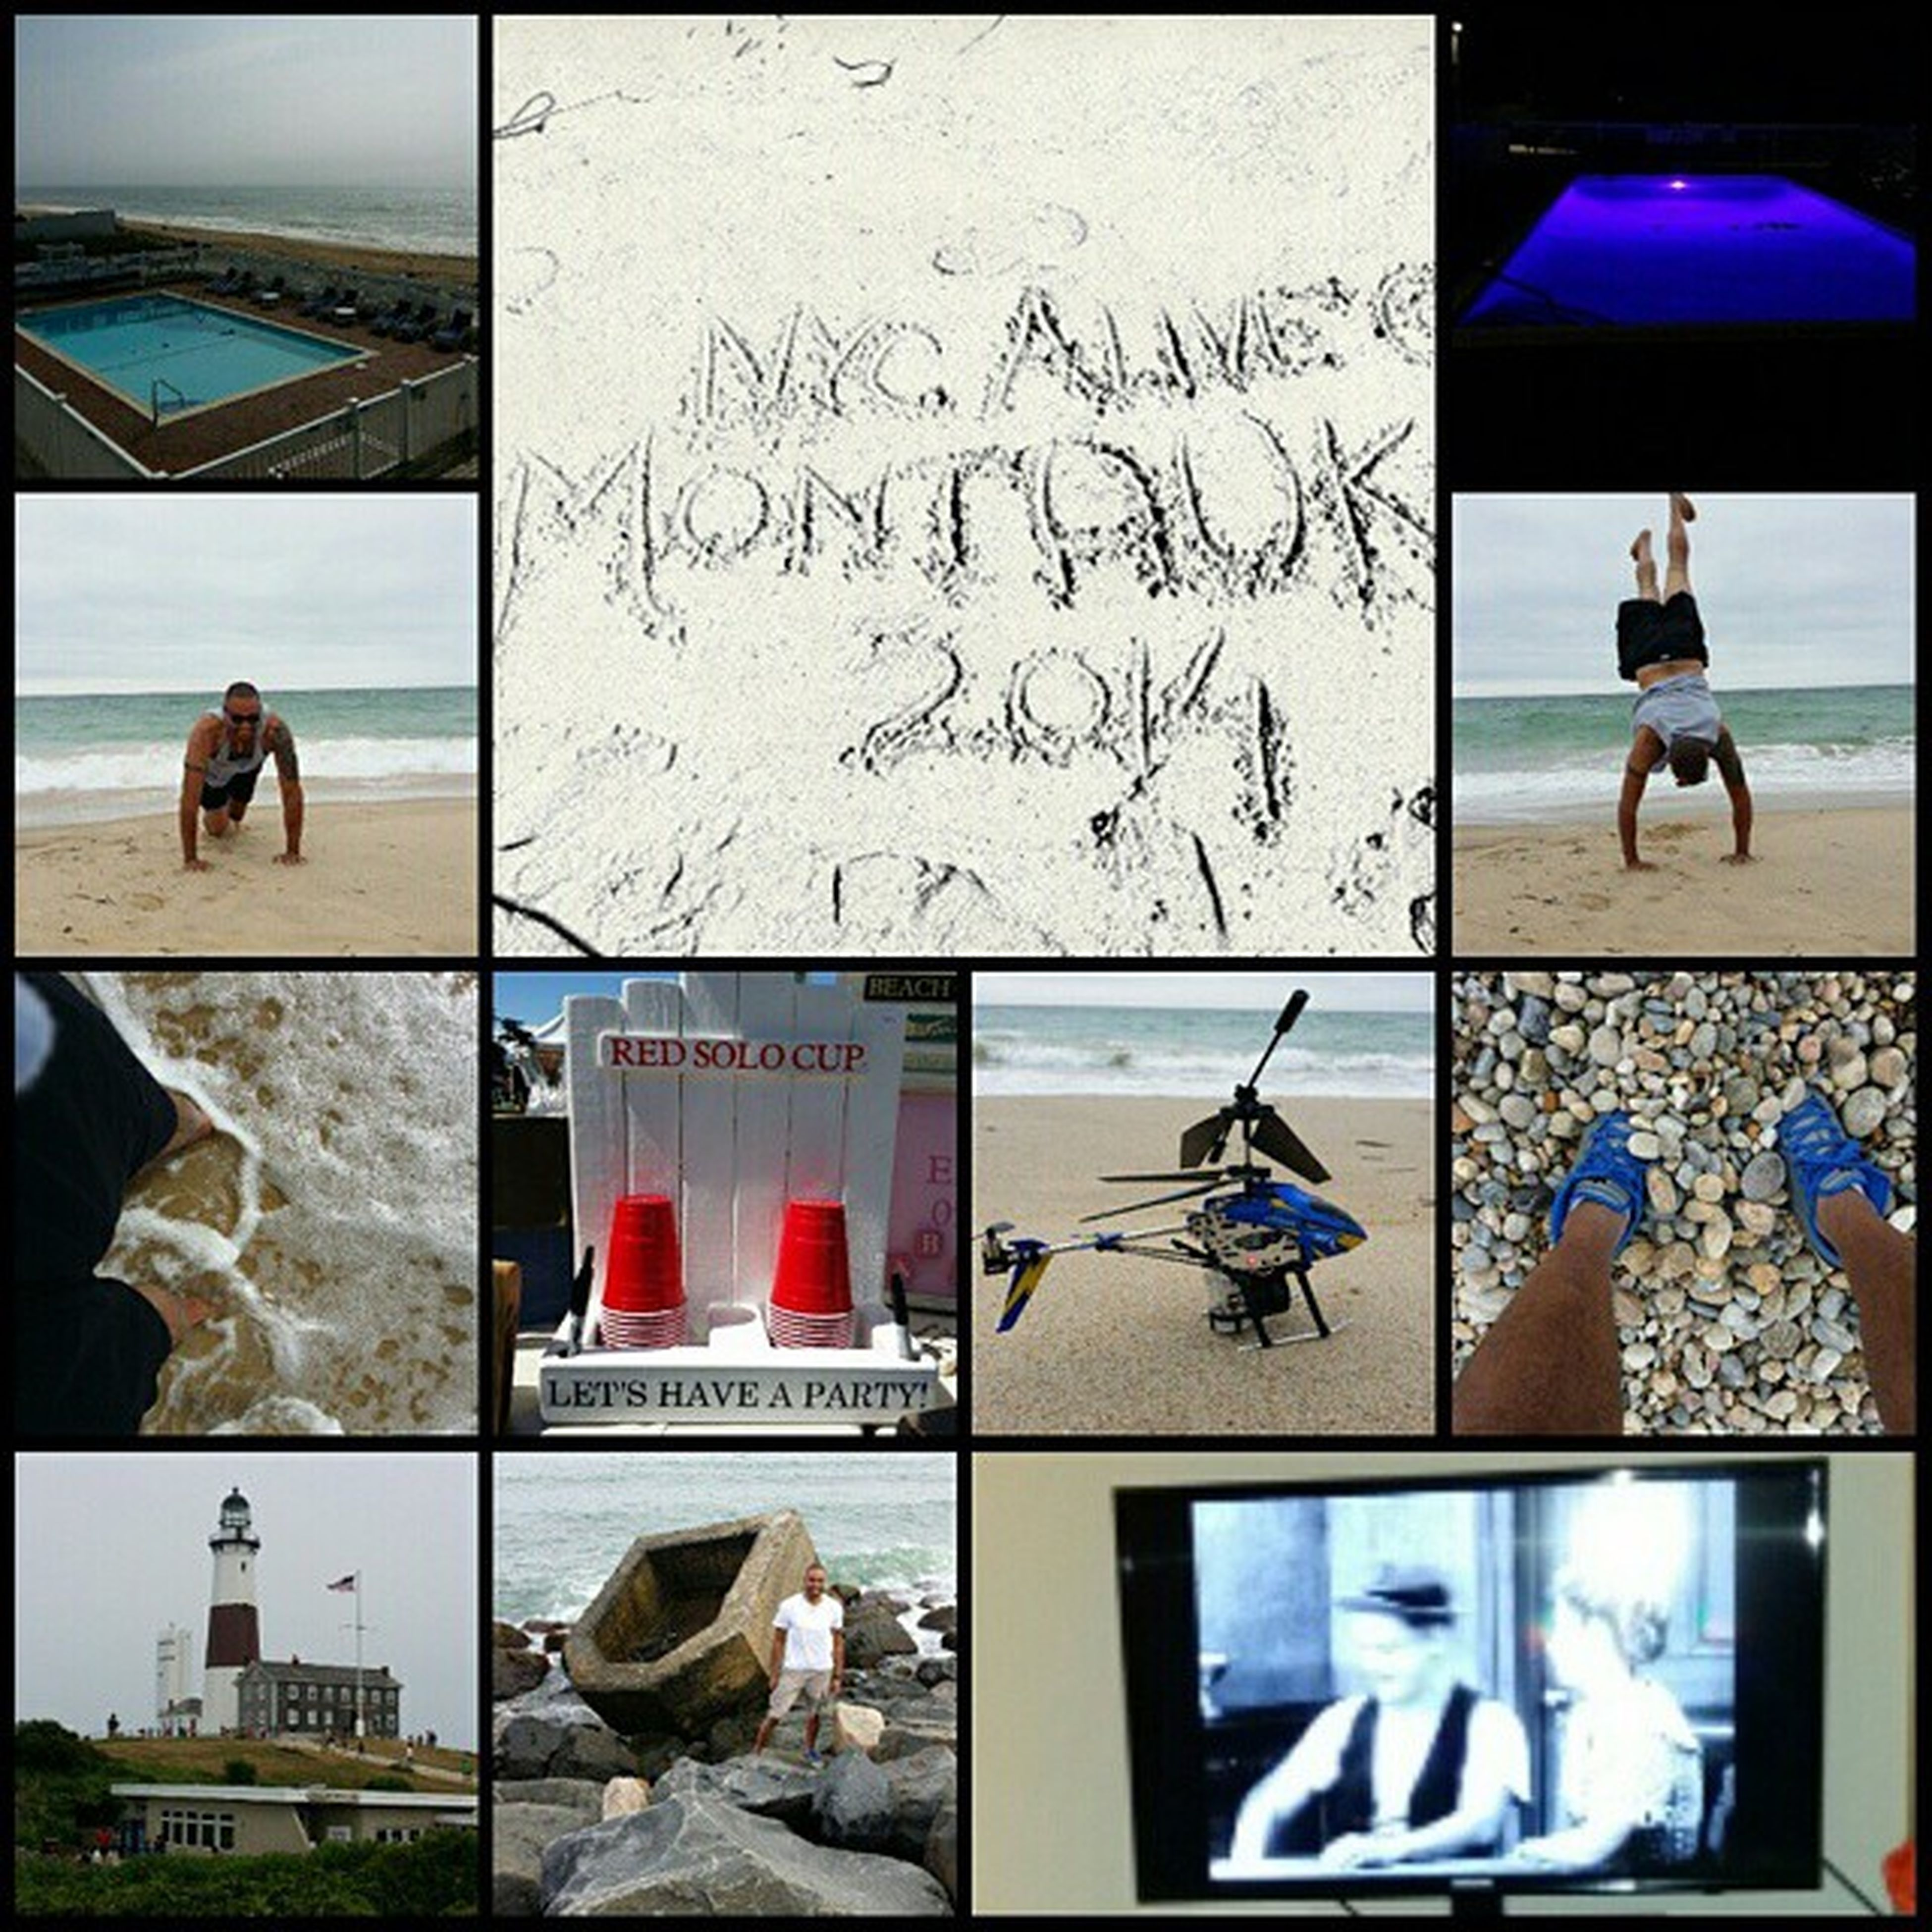 Had a great time in Montauk this weekend. Ended my night with some honeymooners. Lol Nycalive Montauk2014 Labordayweekend Laborday muchneededvacation stressfree beach pool lighthouse cliffwalk honeymooners handstand pushup solocups beerpong rchelicopter funtimes greattimes goodtimes goodweather laughs suninmyface saltwaterpool ineedanothervacation toesinthesand longisland li